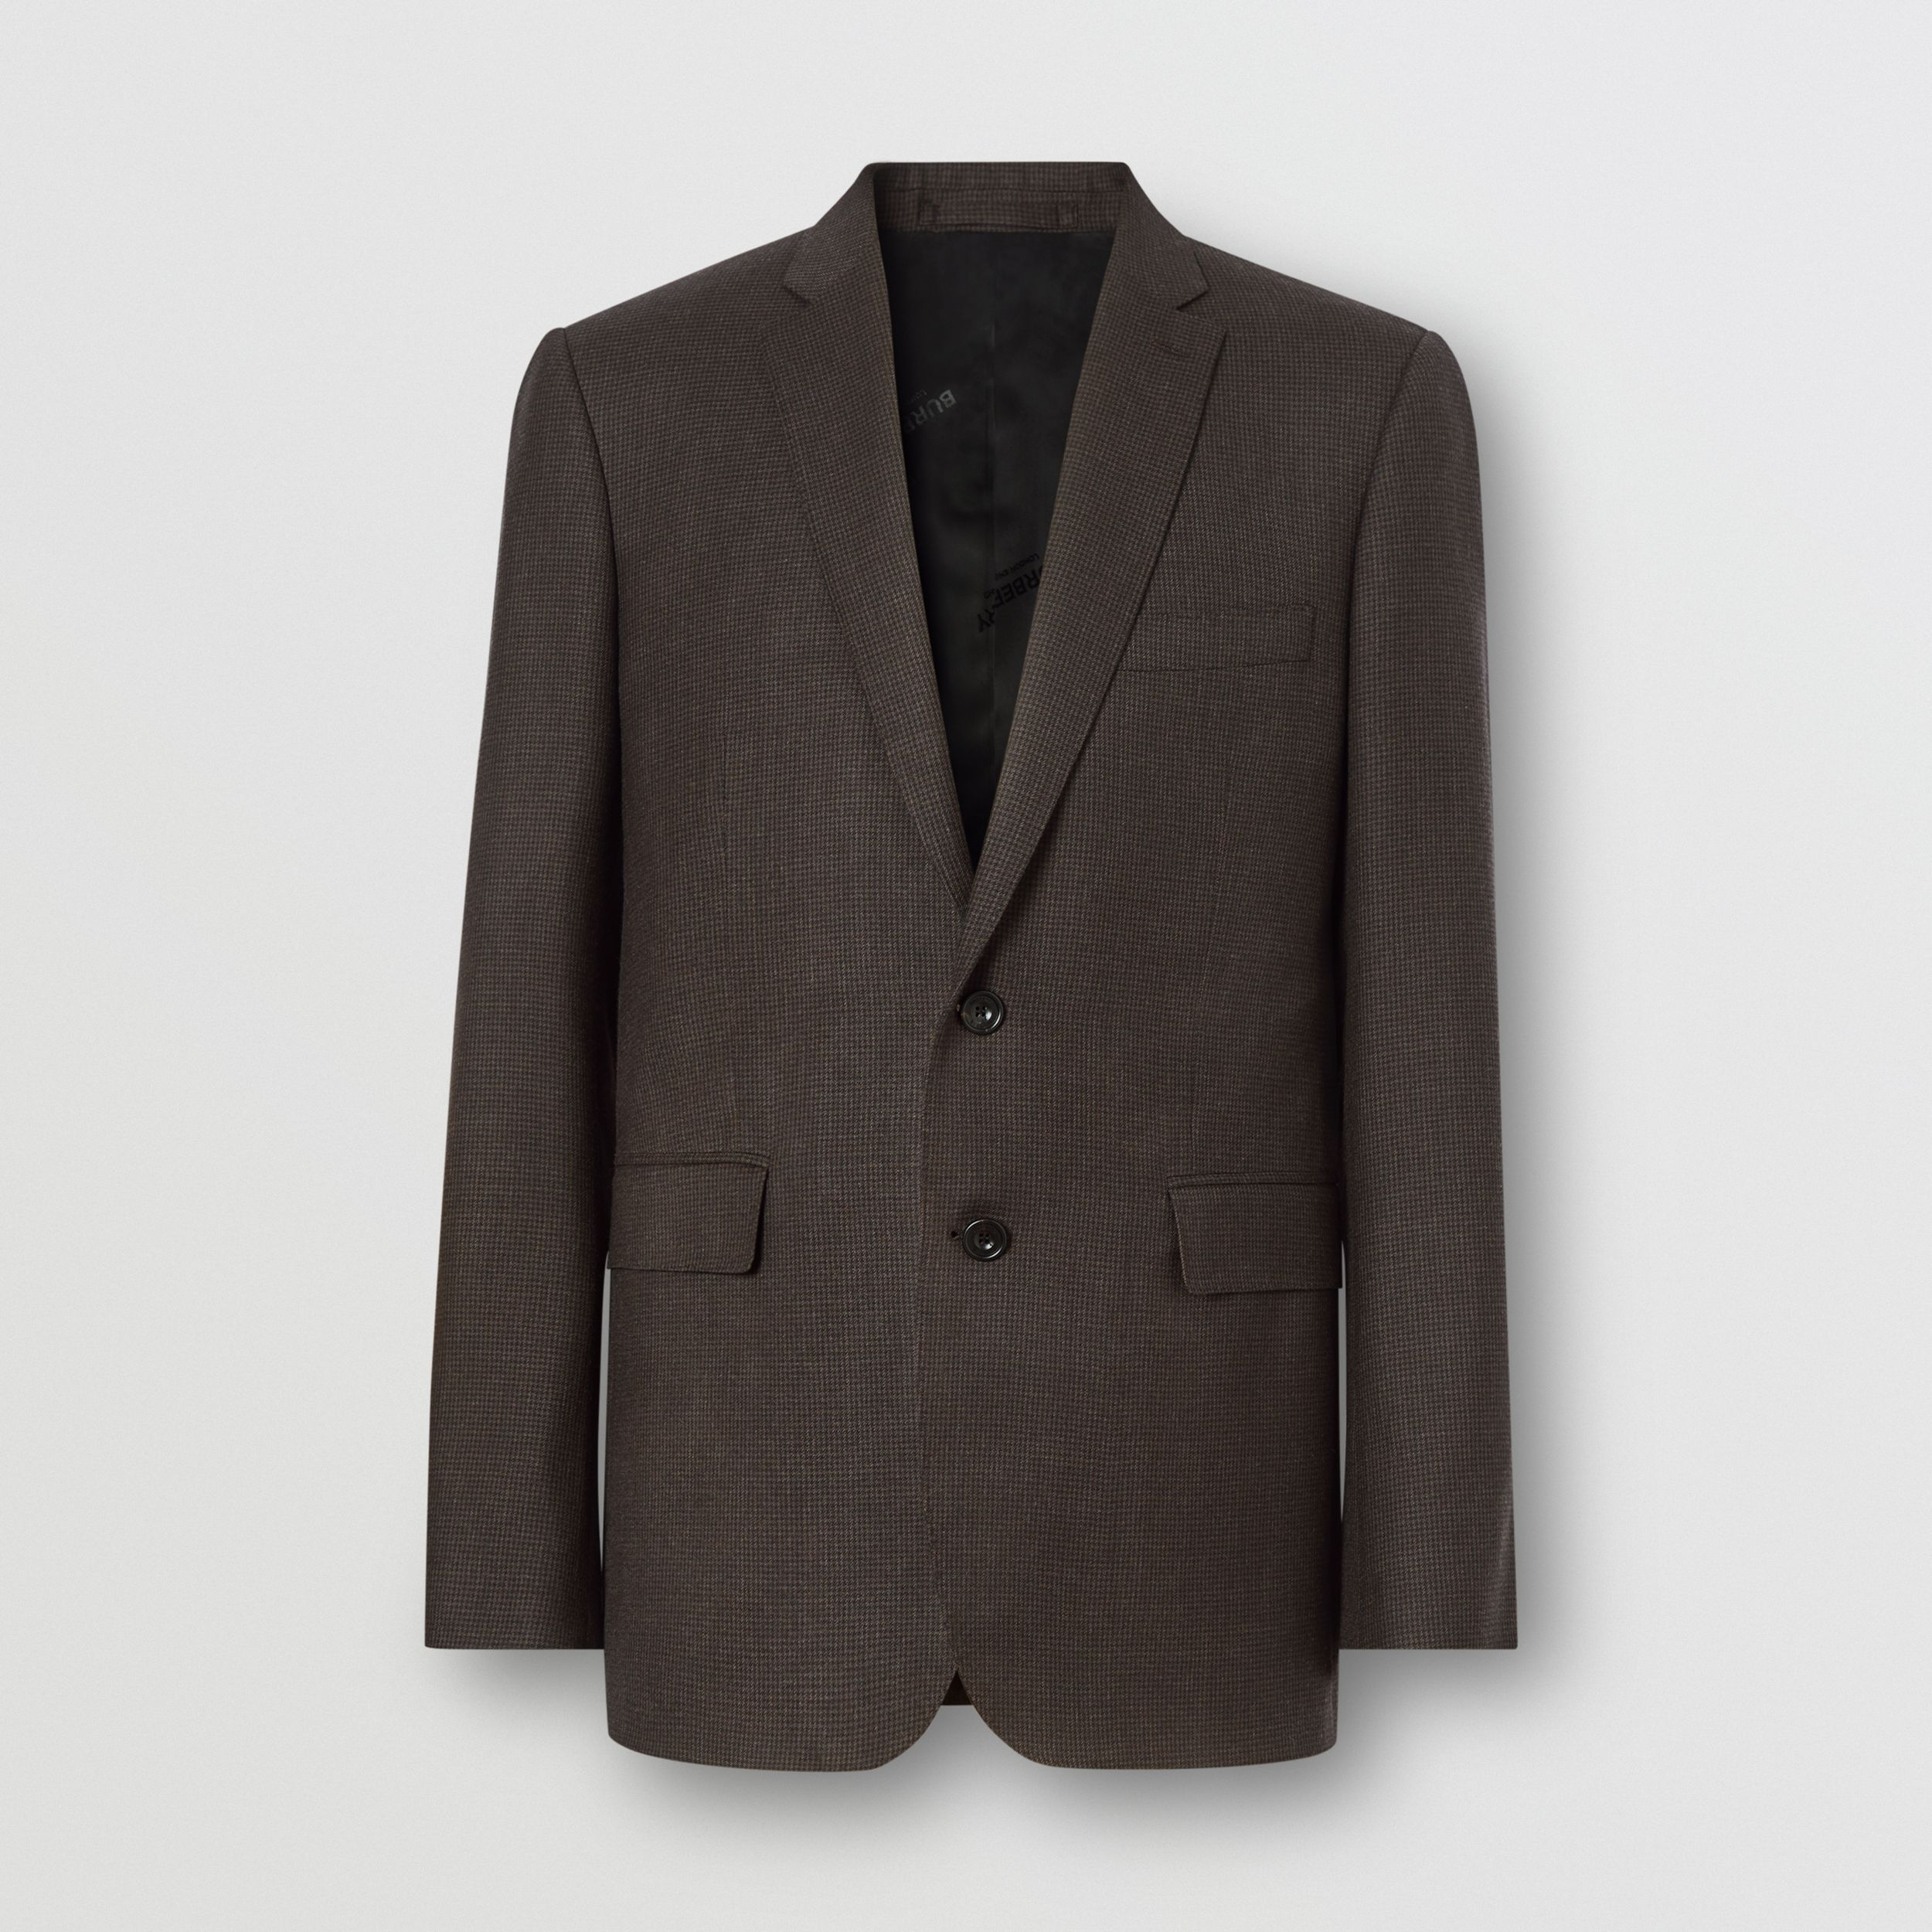 Slim Fit Puppytooth Check Wool Suit in Dark Brown - Men | Burberry - 4